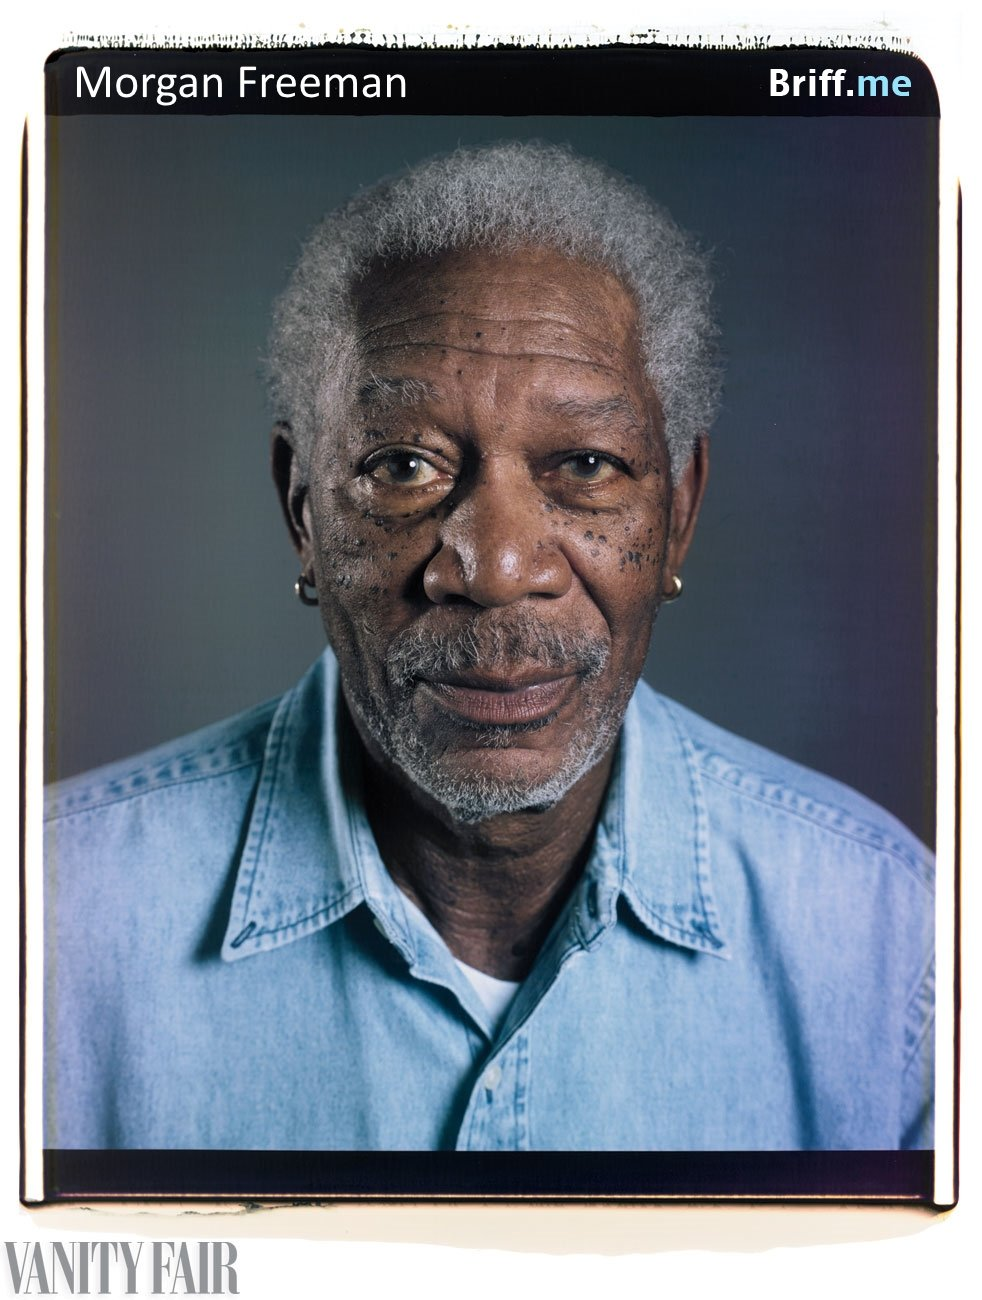 Celebs without Makeup 11 Morgan Freeman